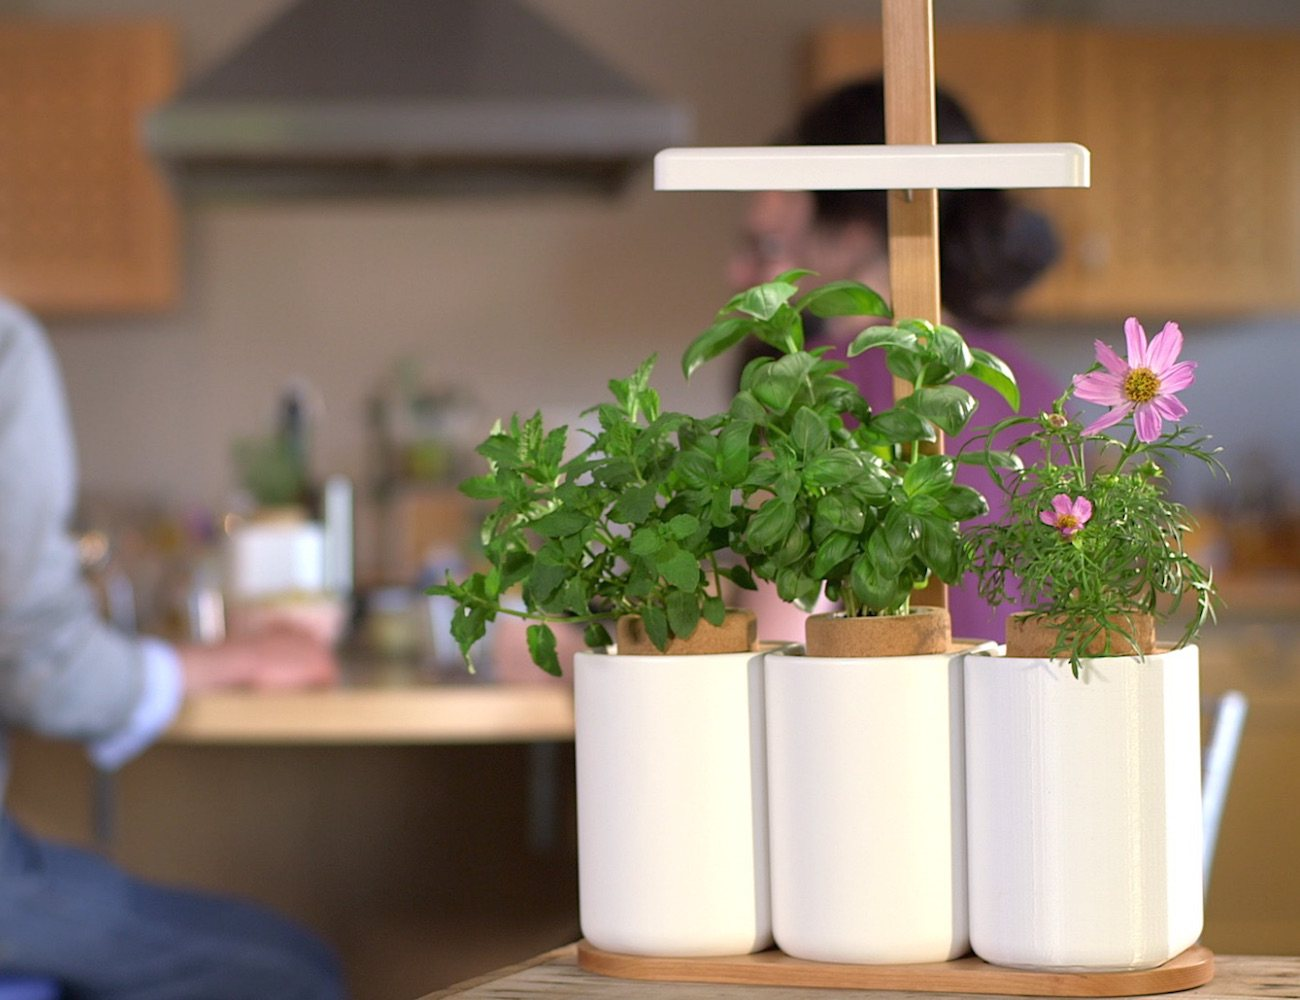 Lilo – Grow Fresh Herbs All Year Round